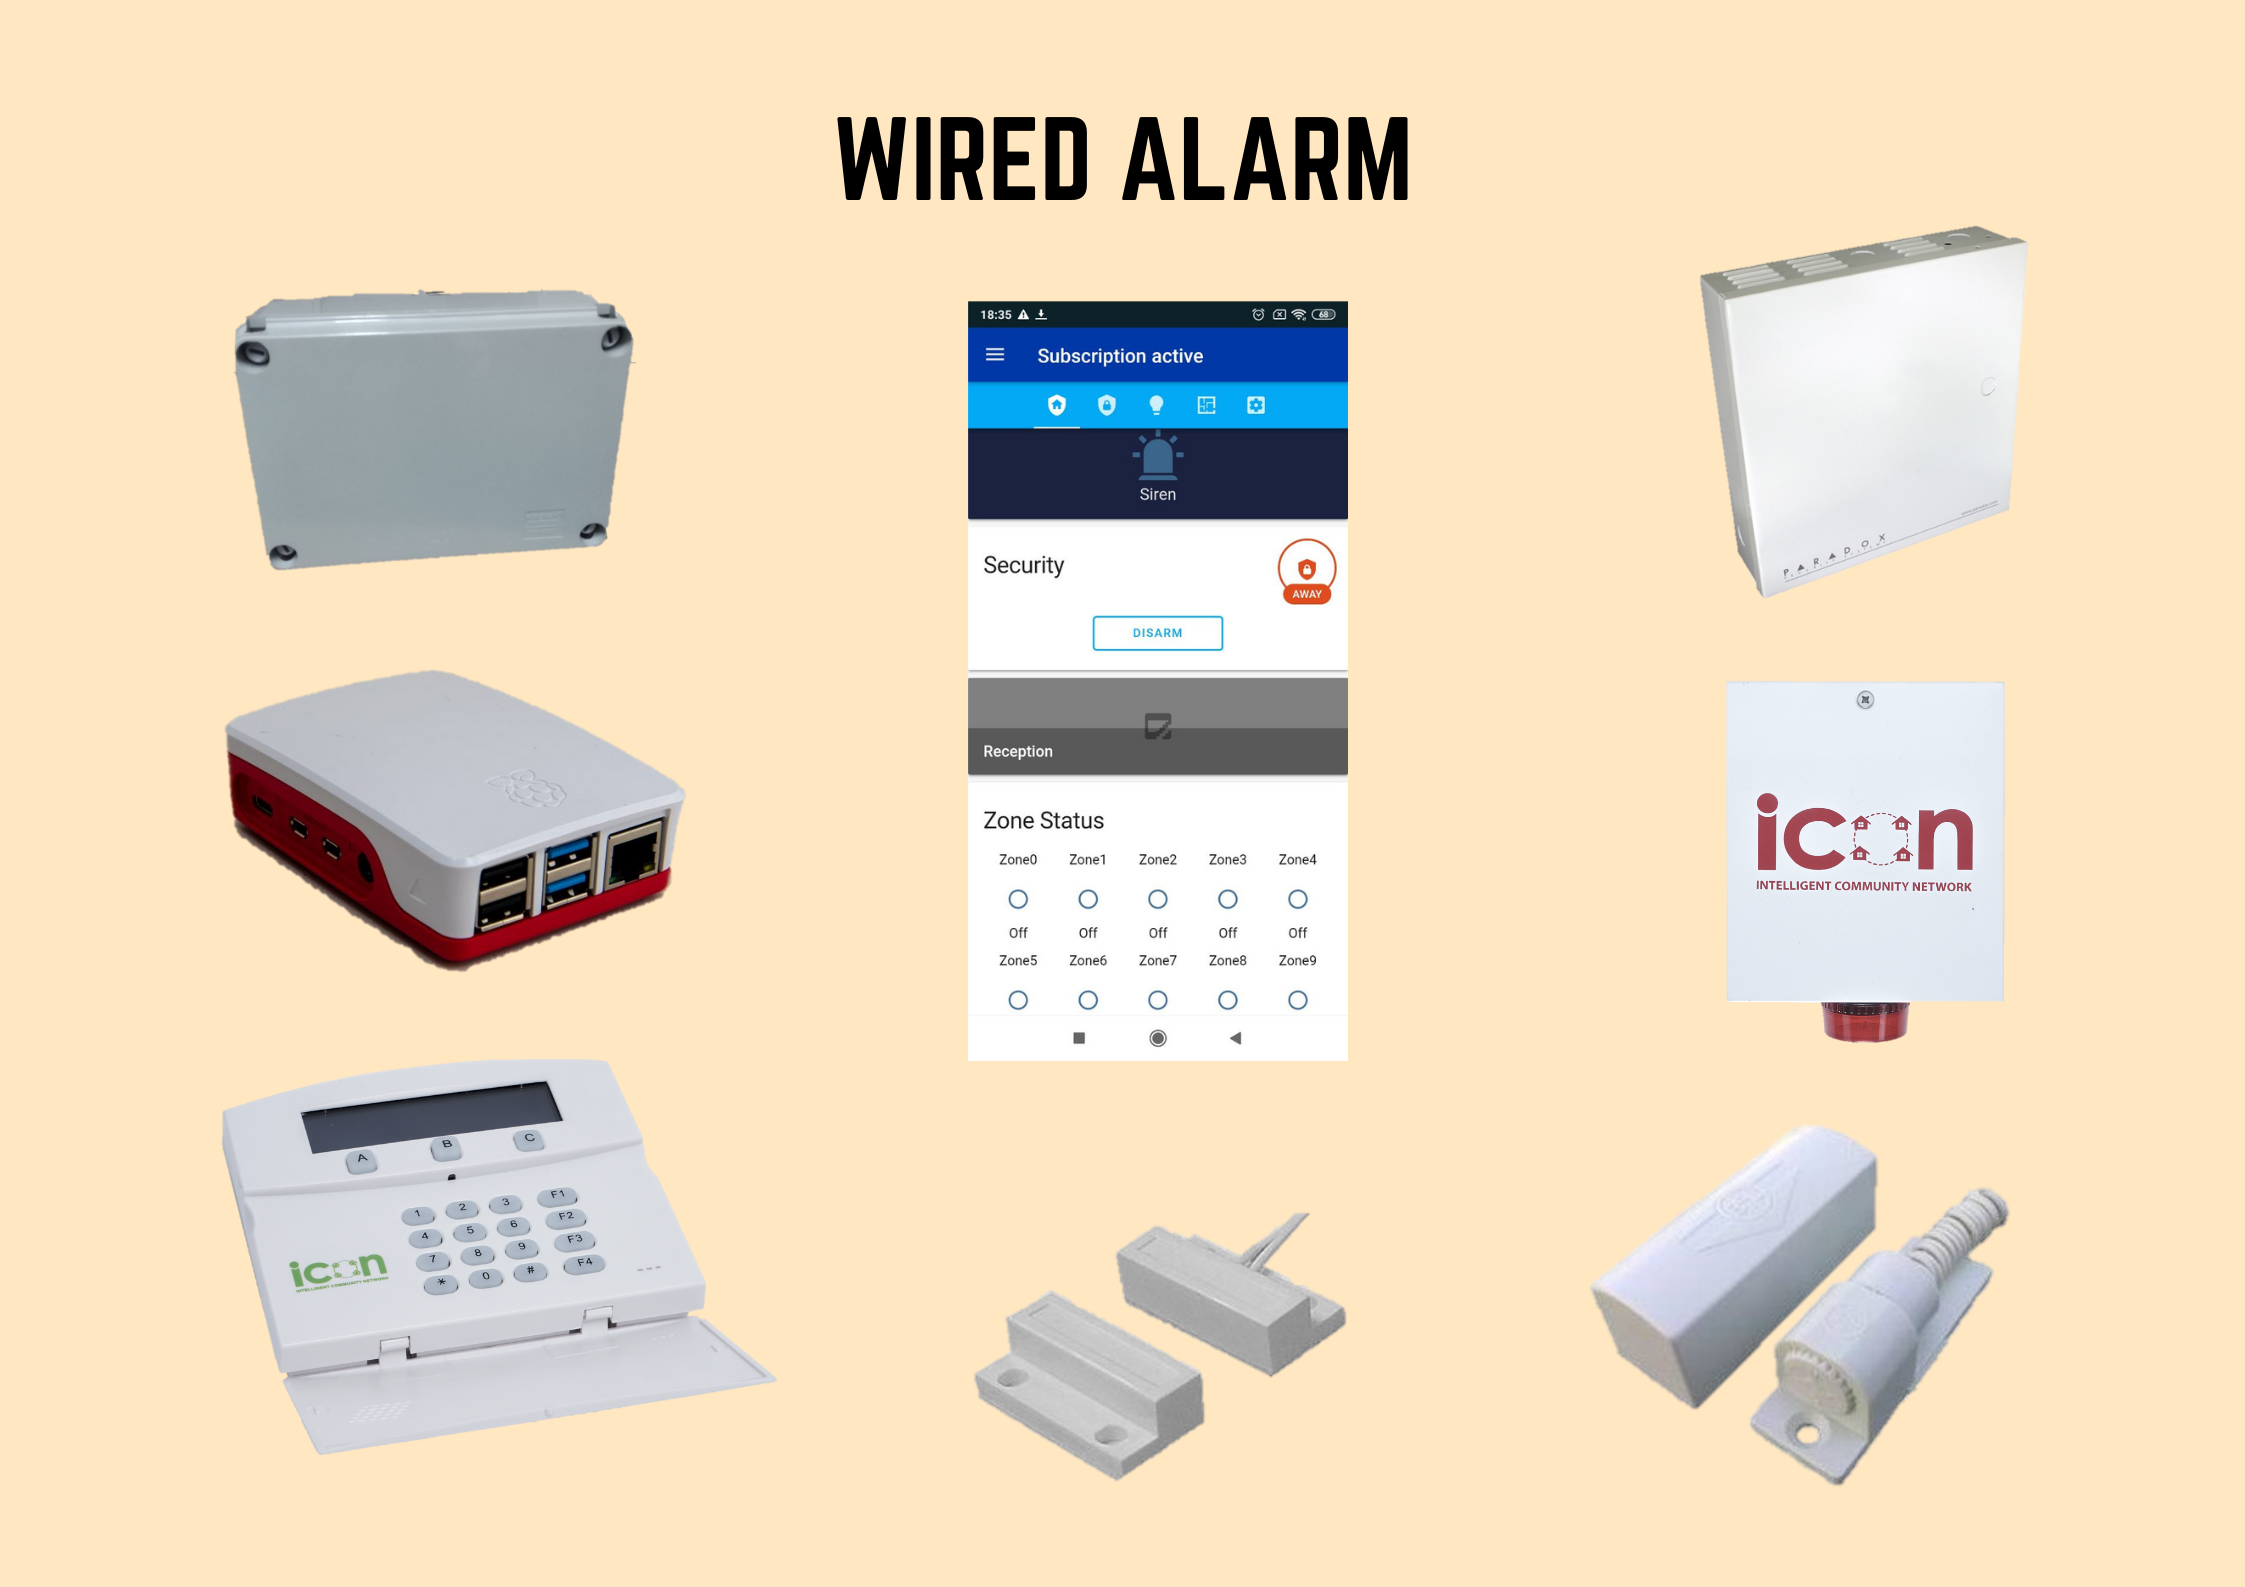 wired alarm